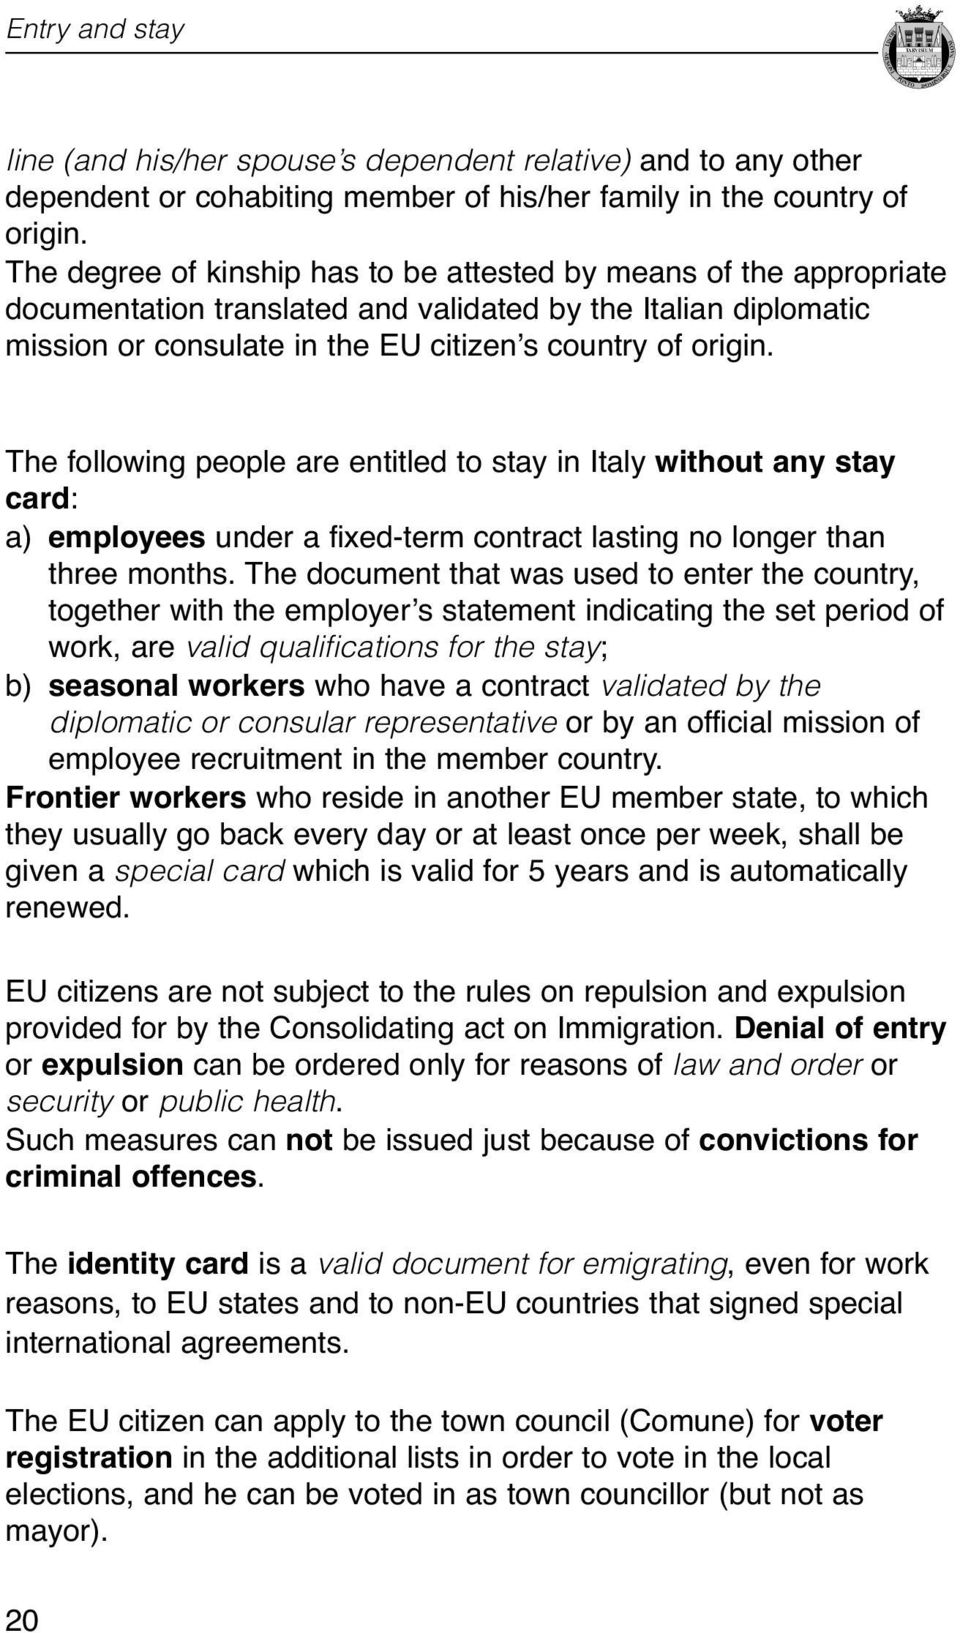 without any stay card: a) employees under a fixed-term contract lasting no longer than three months The document that was used to enter the country, together with the employer s statement indicating